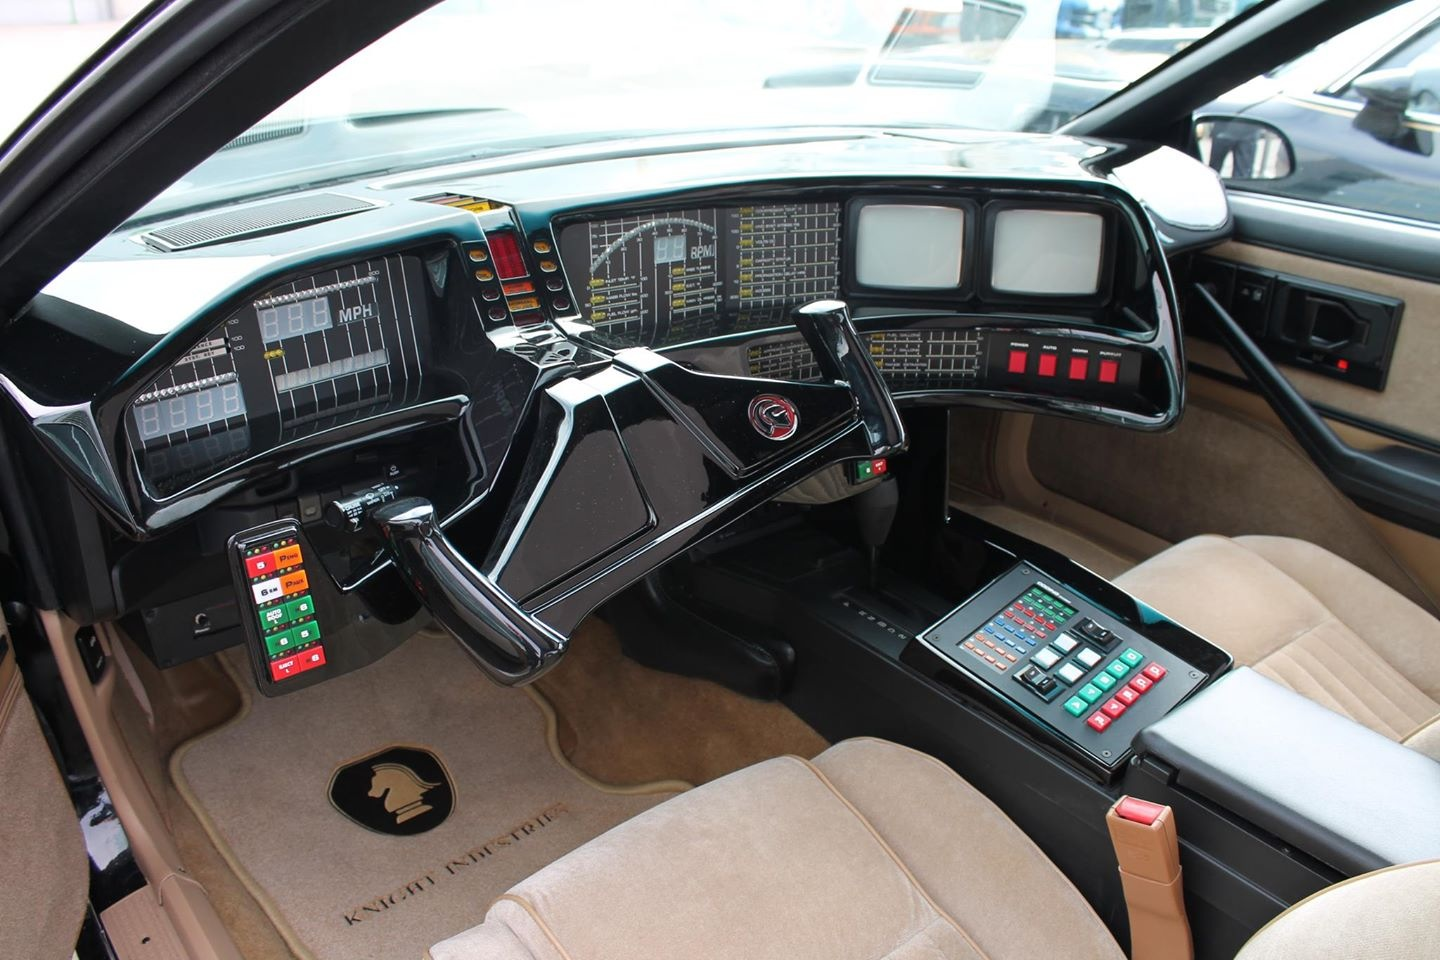 Knight Rider Car For Sale >> Knight Rider Store - Turnkey KITT Replica, Collectibles